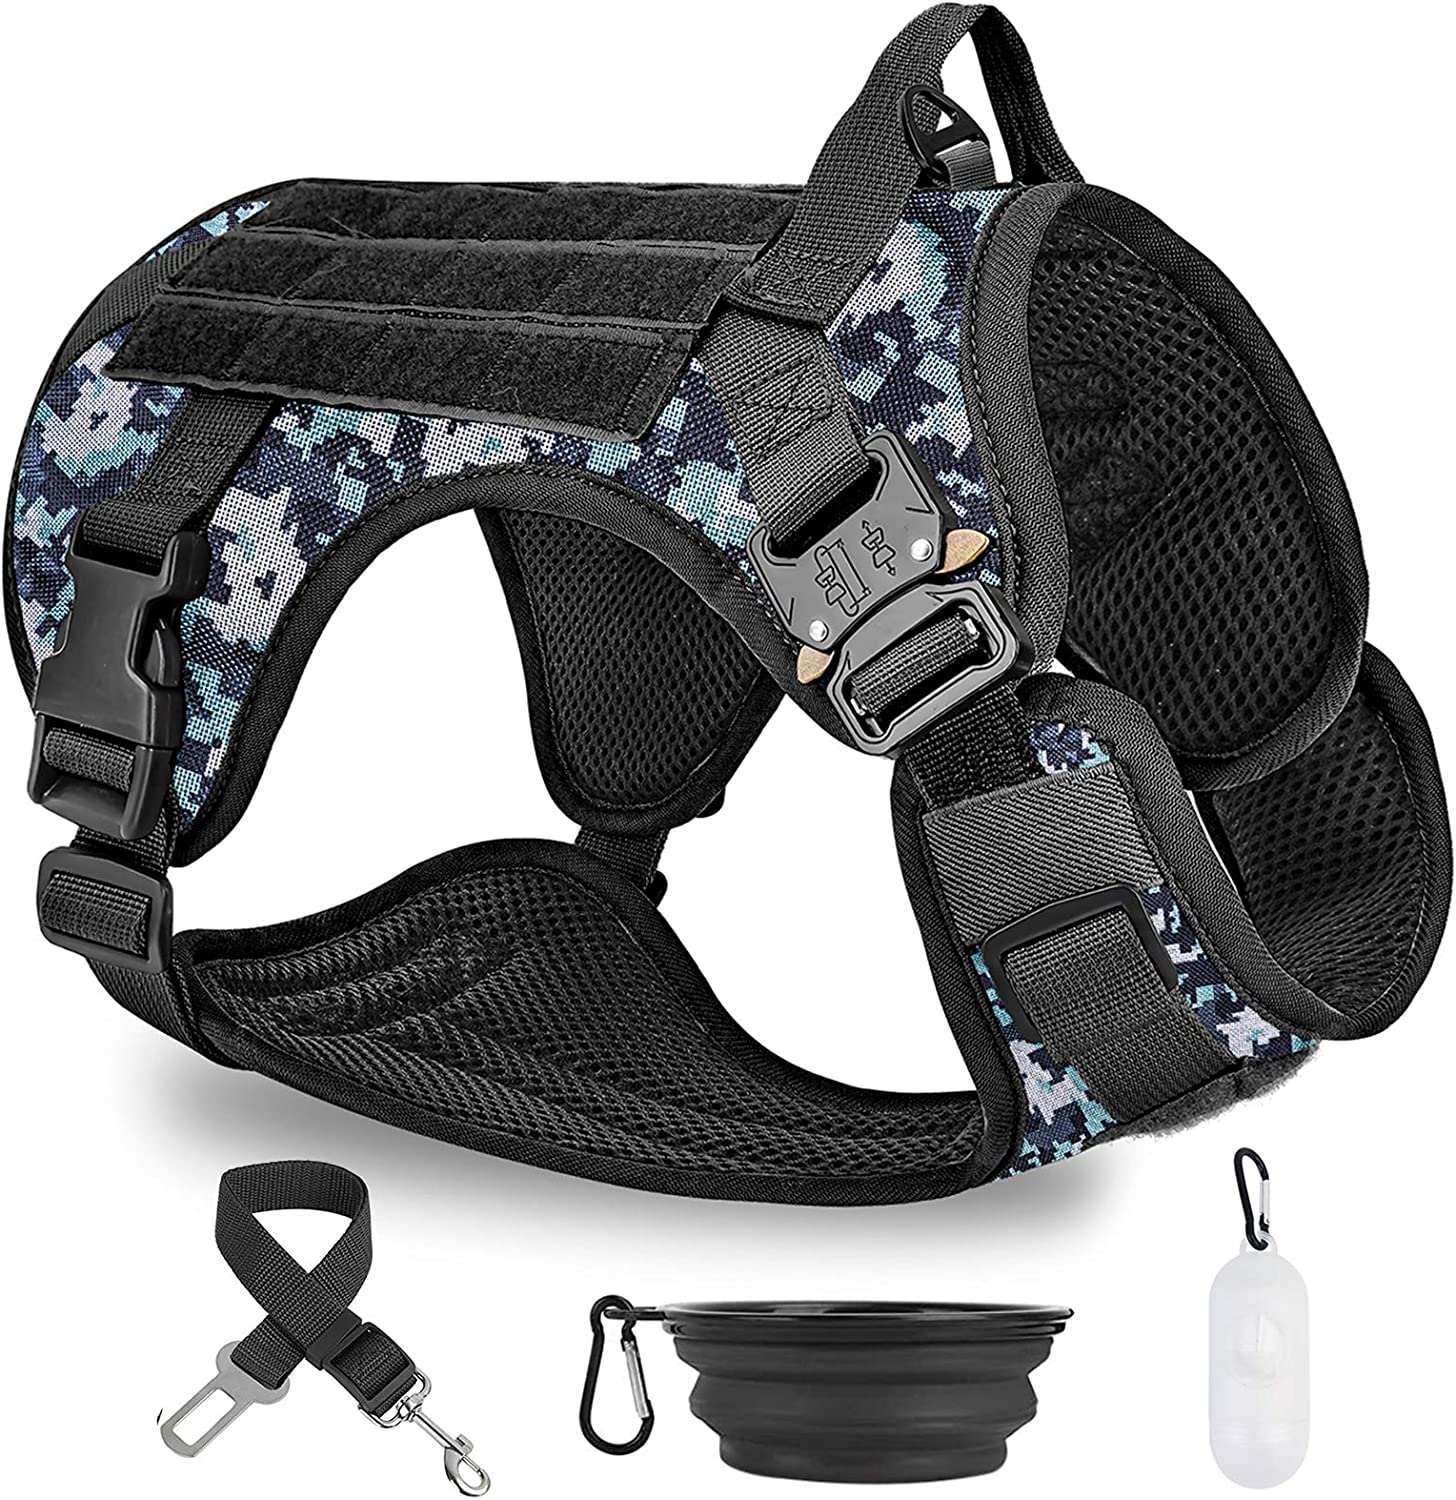 PAWDAY Tactical Dog Harness No Pulling Store wholesale for La Clip Leash Front